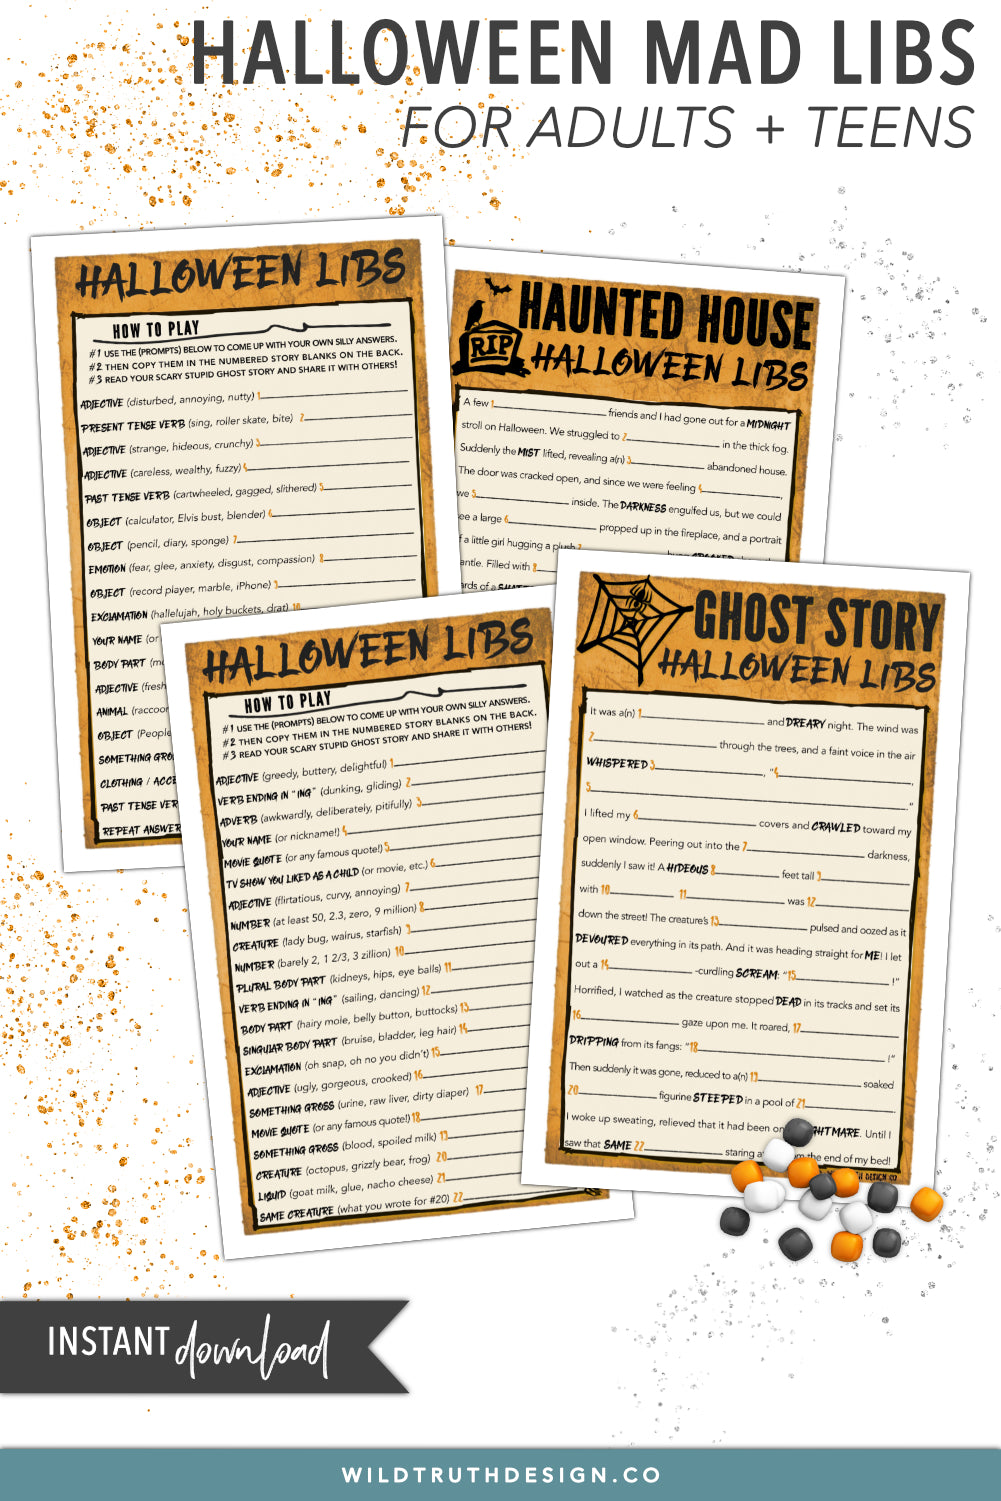 halloween mad libs for adults & teens